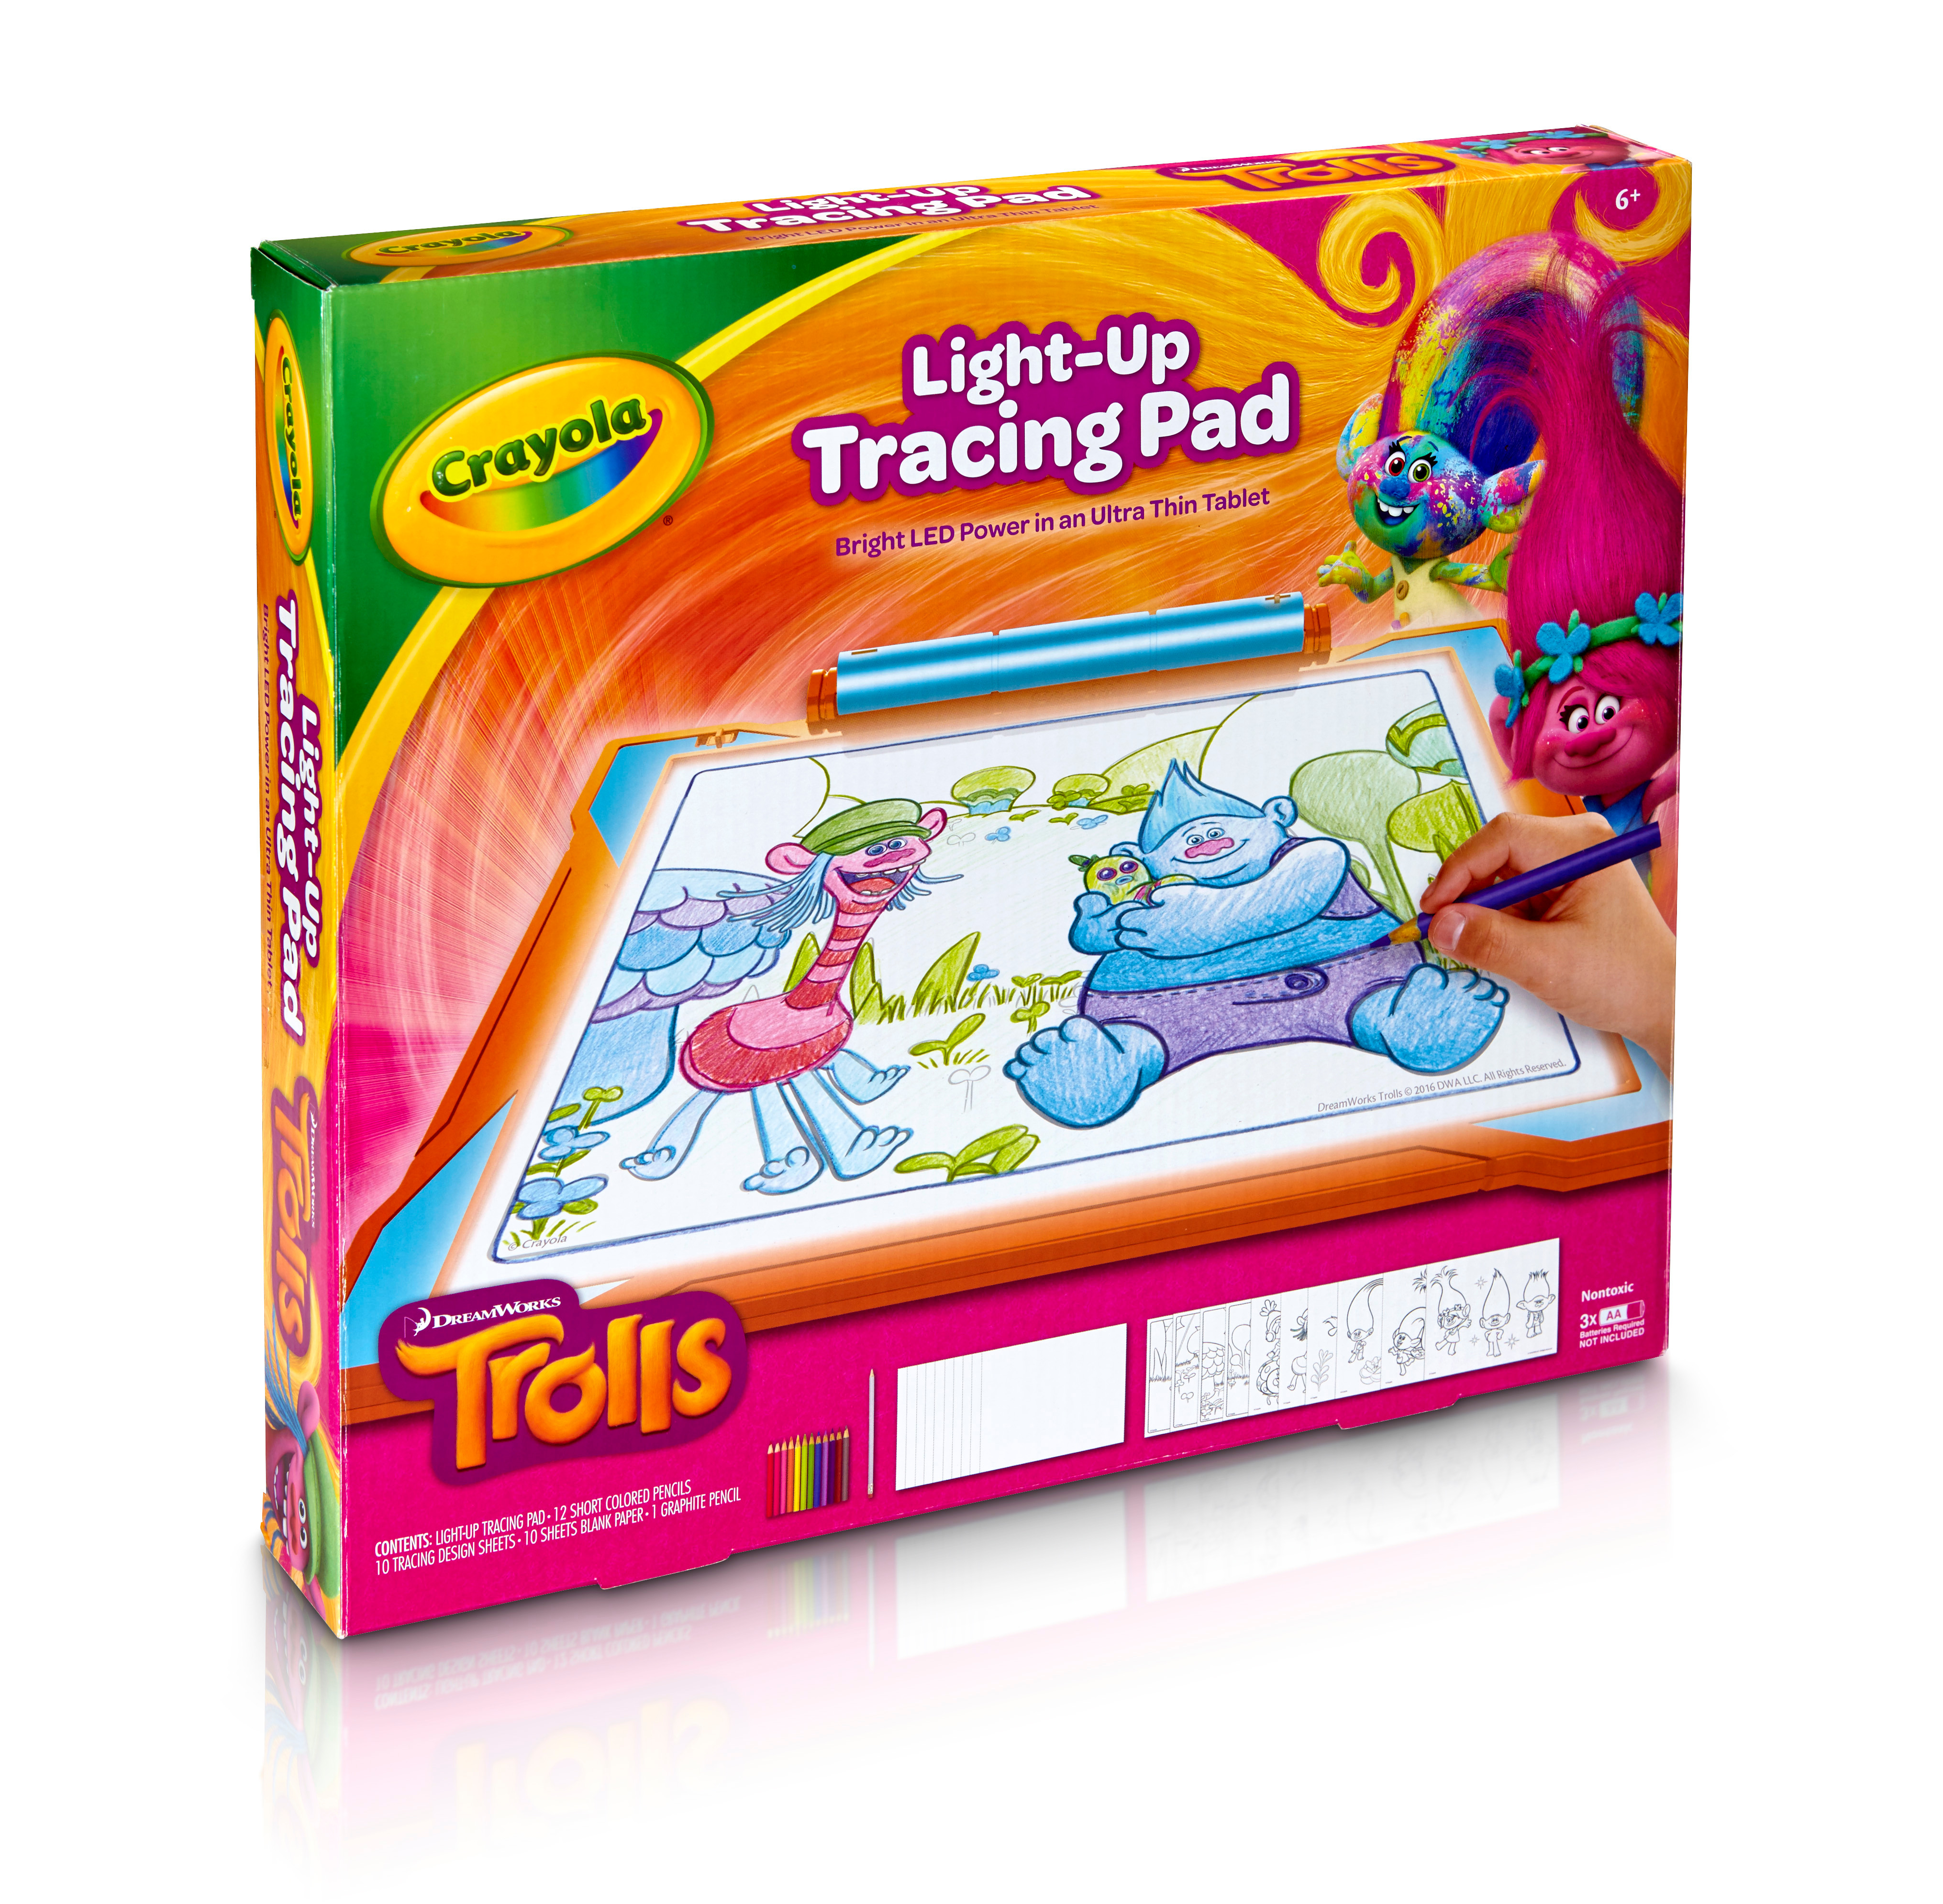 Crayola Trolls Light Up Tracing Pad Gift Toys For Kids Ages 6 Walmart Com Walmart Com